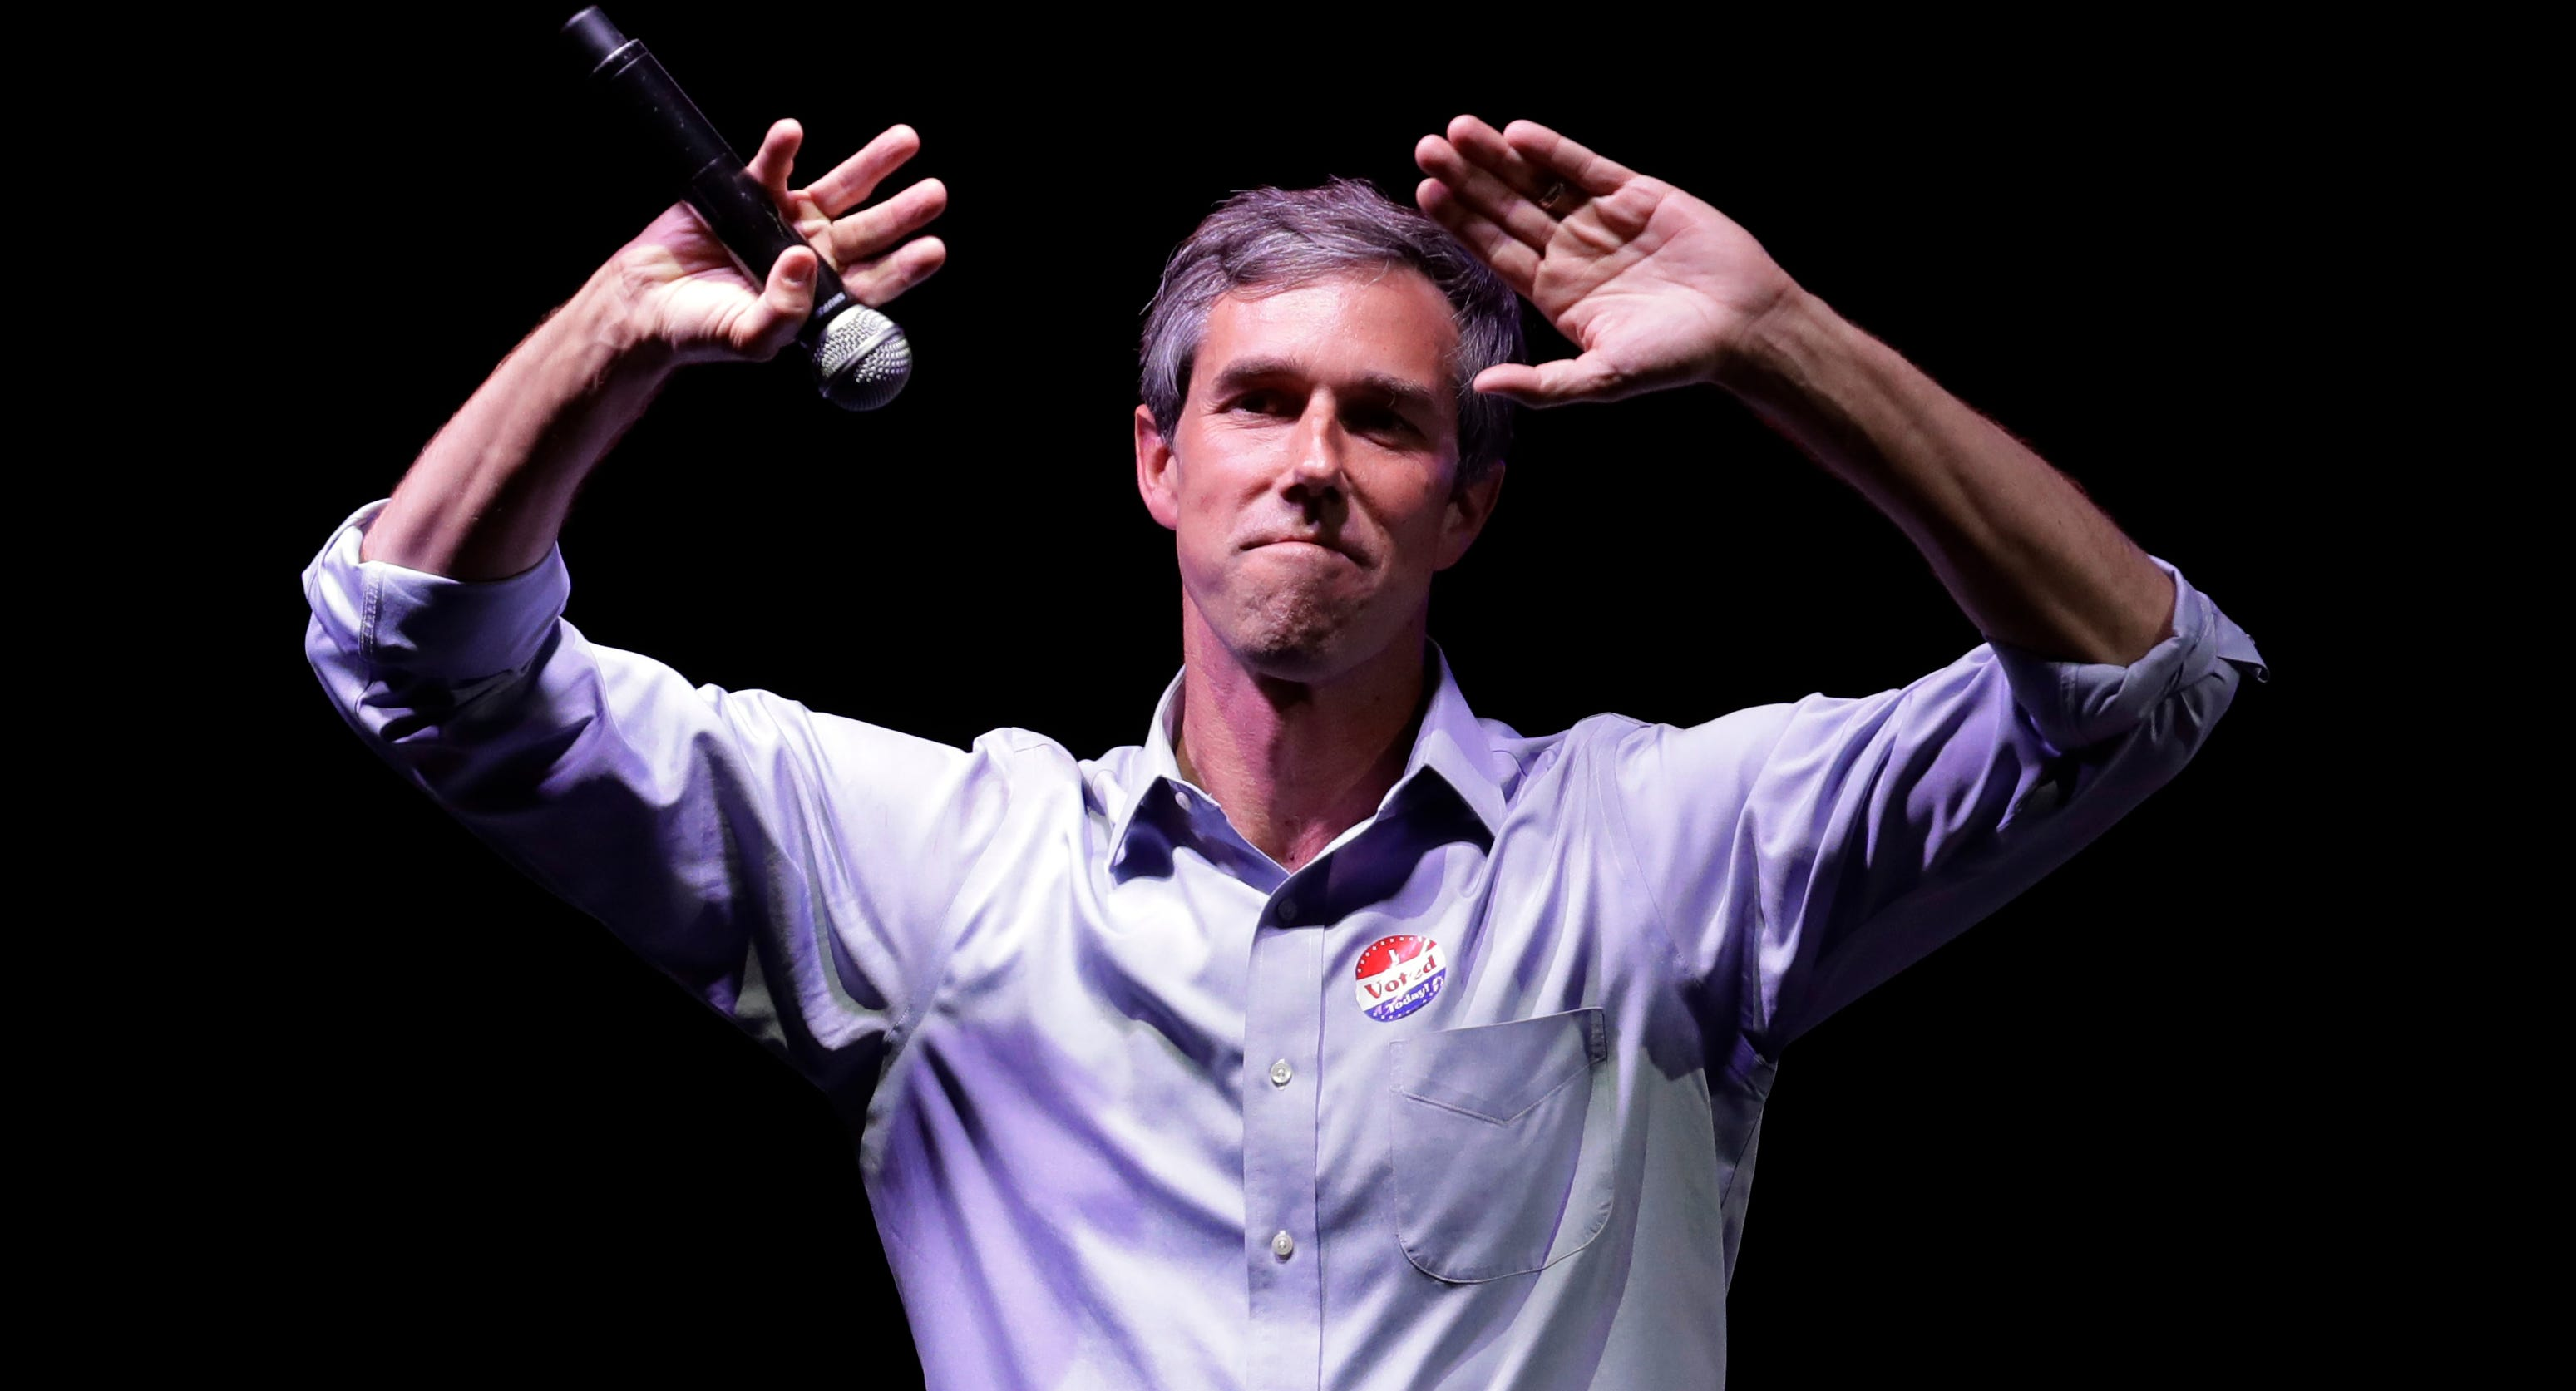 Rep. Beto O'Rourke makes his concession speech at his election night party Tuesday in El Paso.